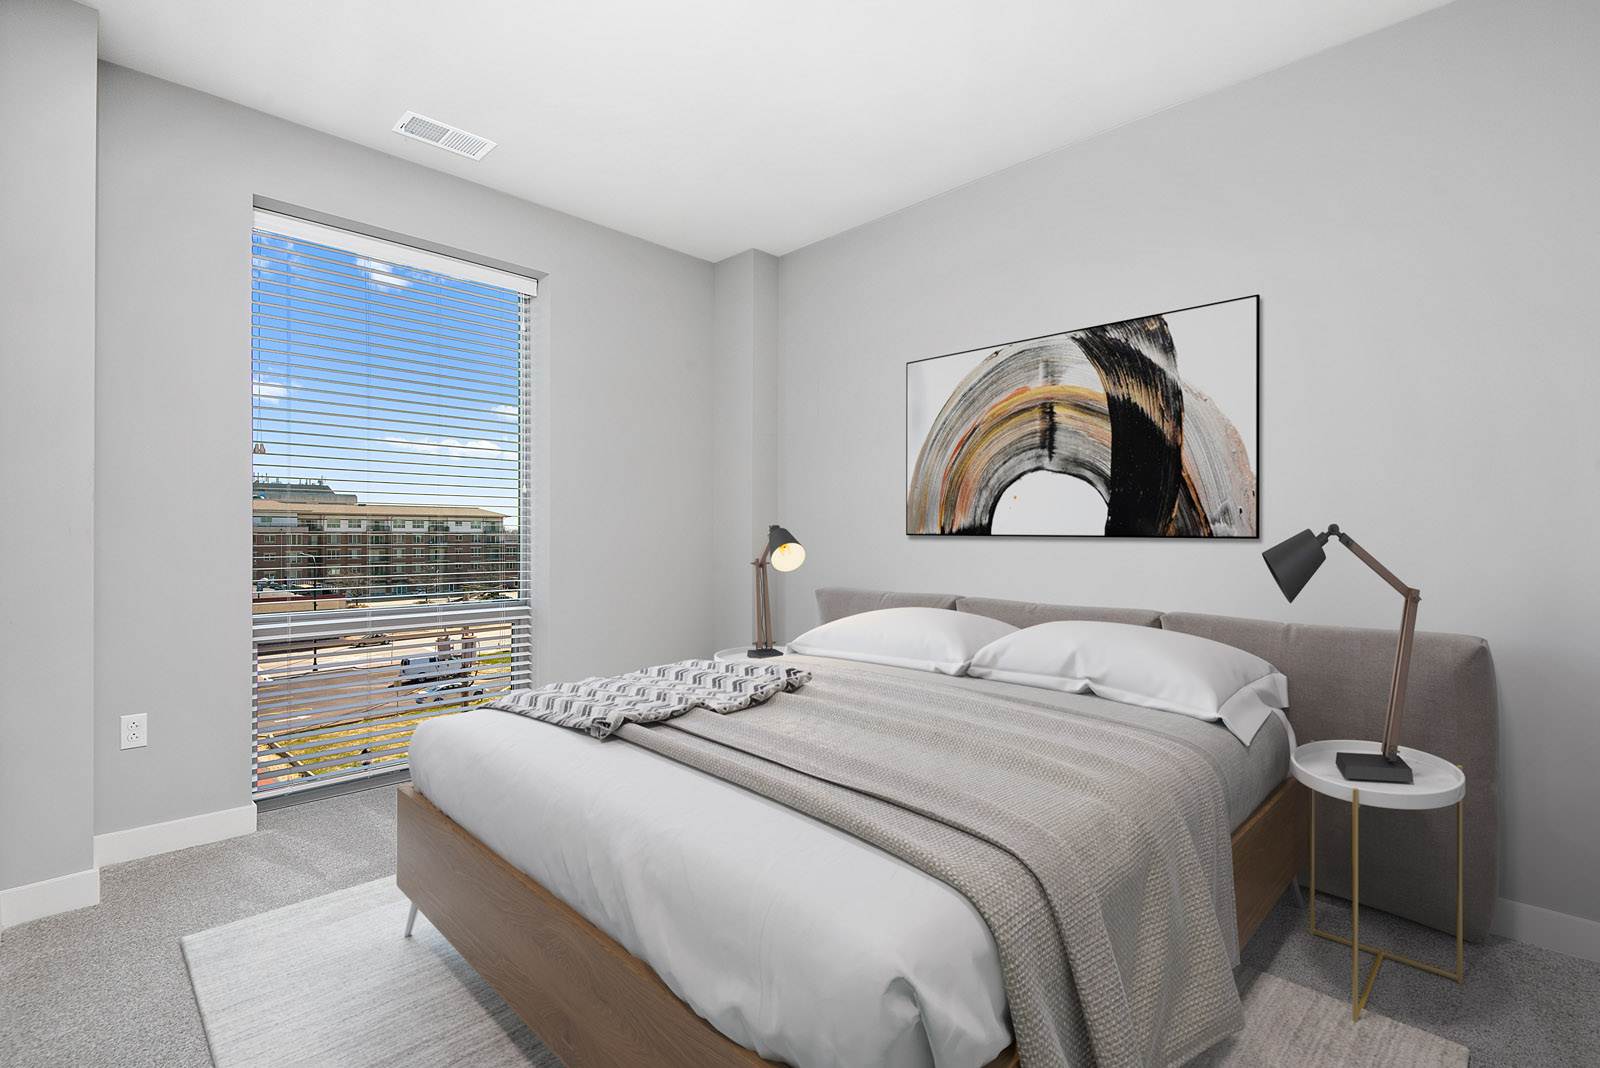 1 bedroom with queen sized bed, two nightstands and large window